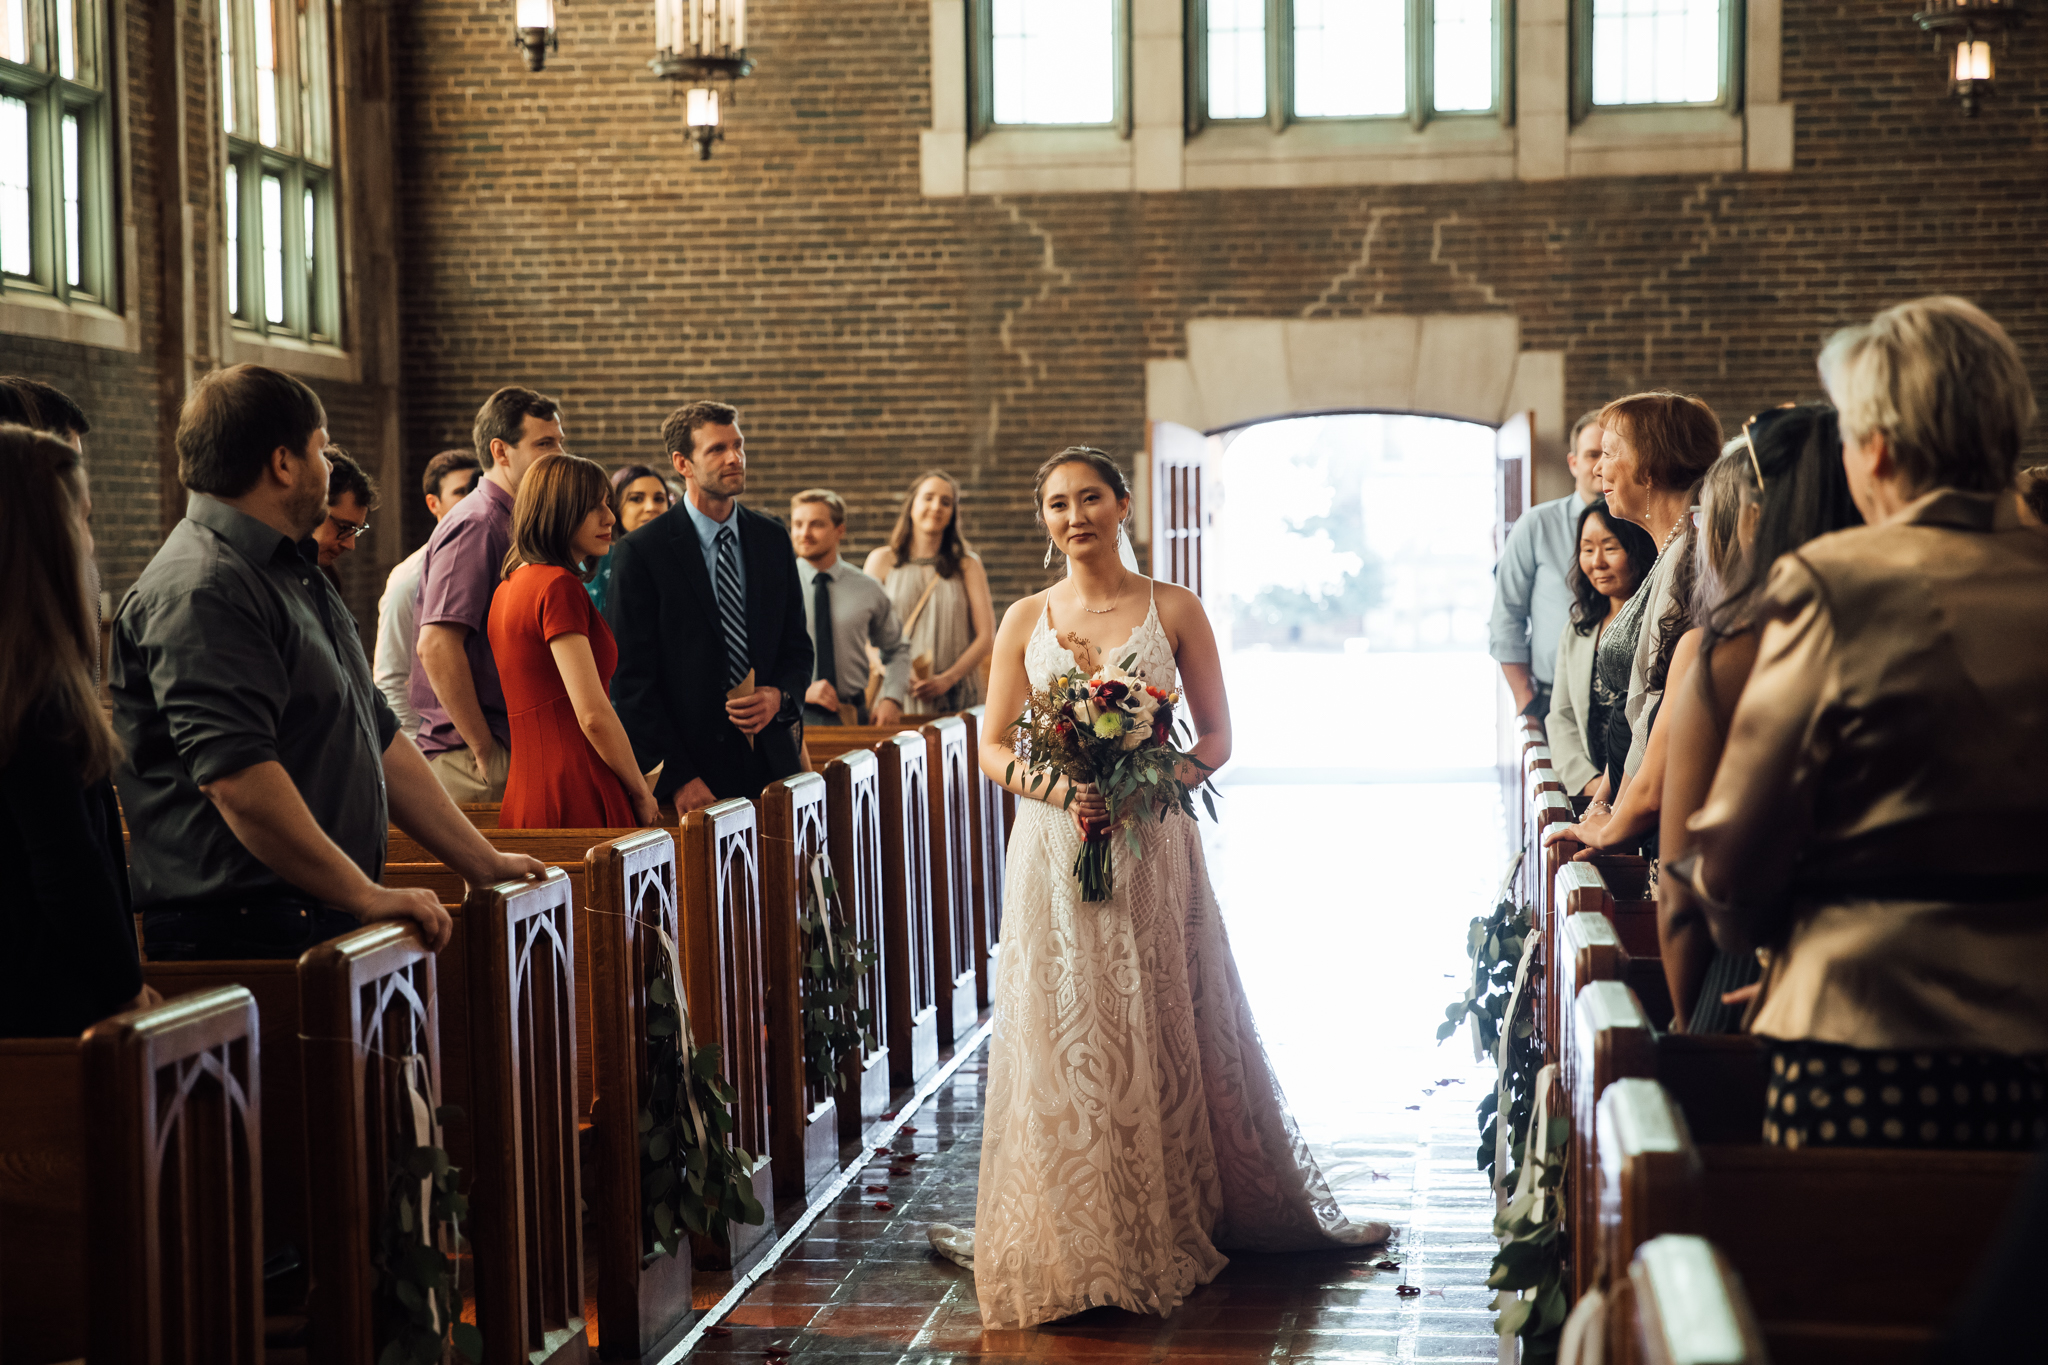 chattanooga-wedding-photographers-thewarmtharoundyou-waterhouse-pavilion-patten-chapel-wedding-sam-dusty (74 of 269).jpg